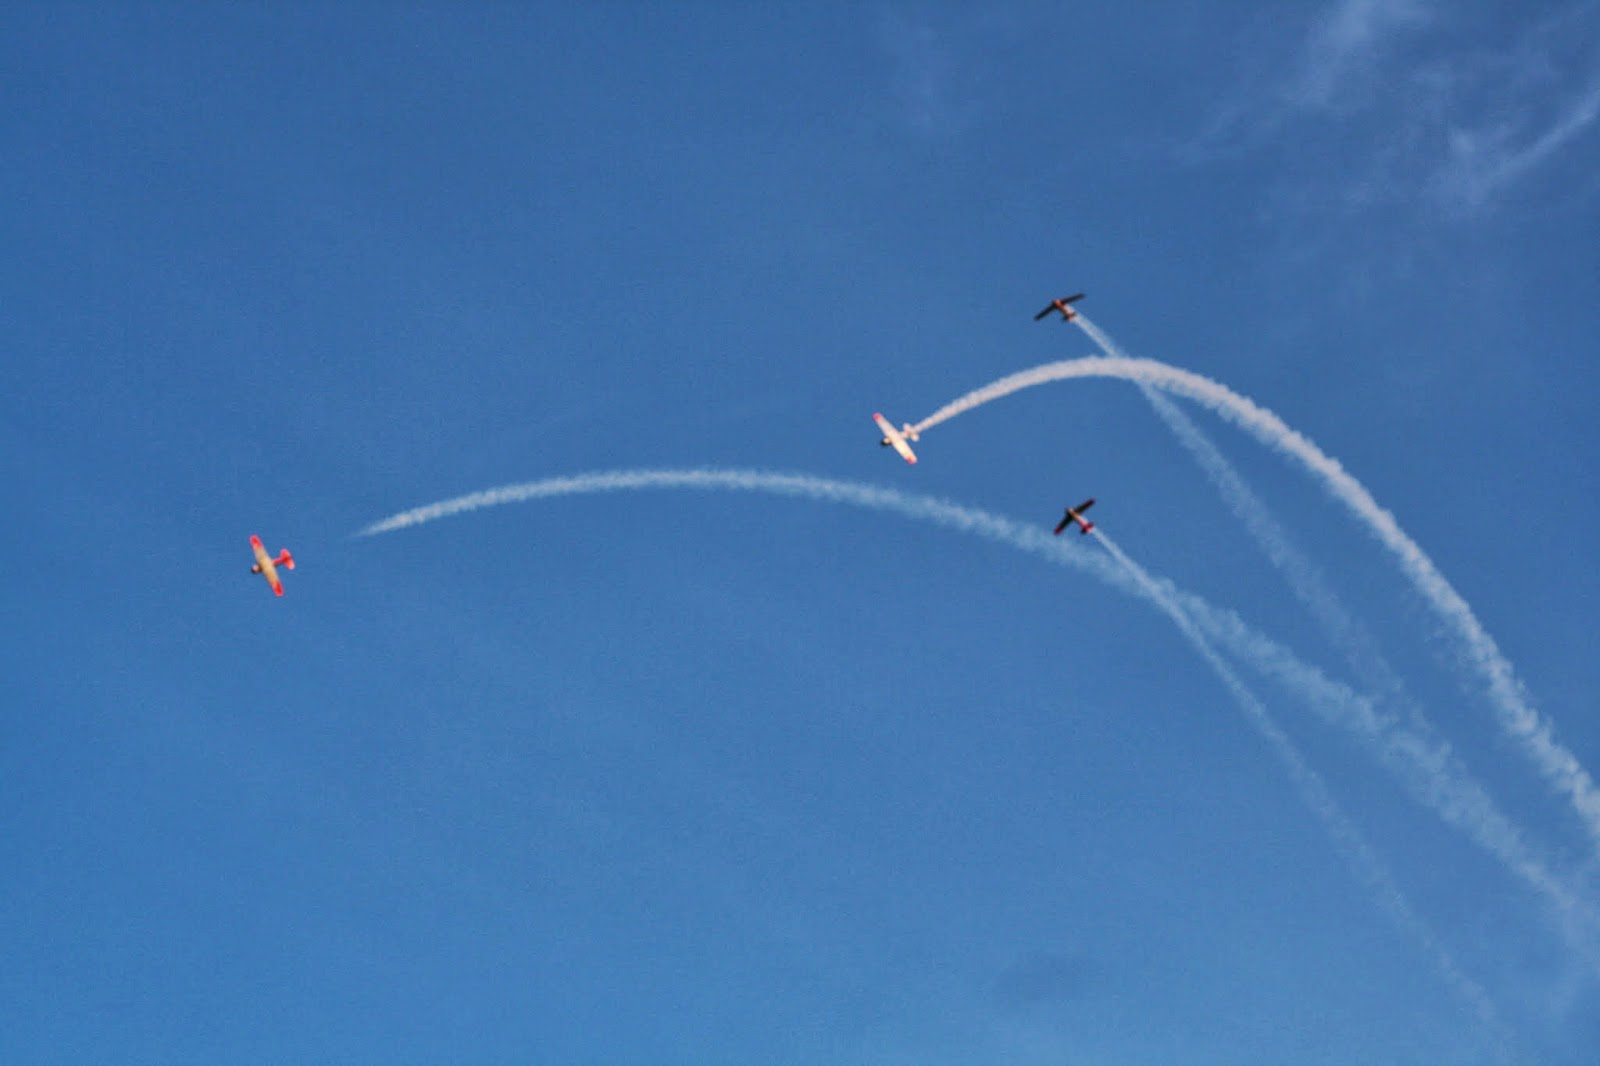 Four airplanes criss cross in a blue sky.